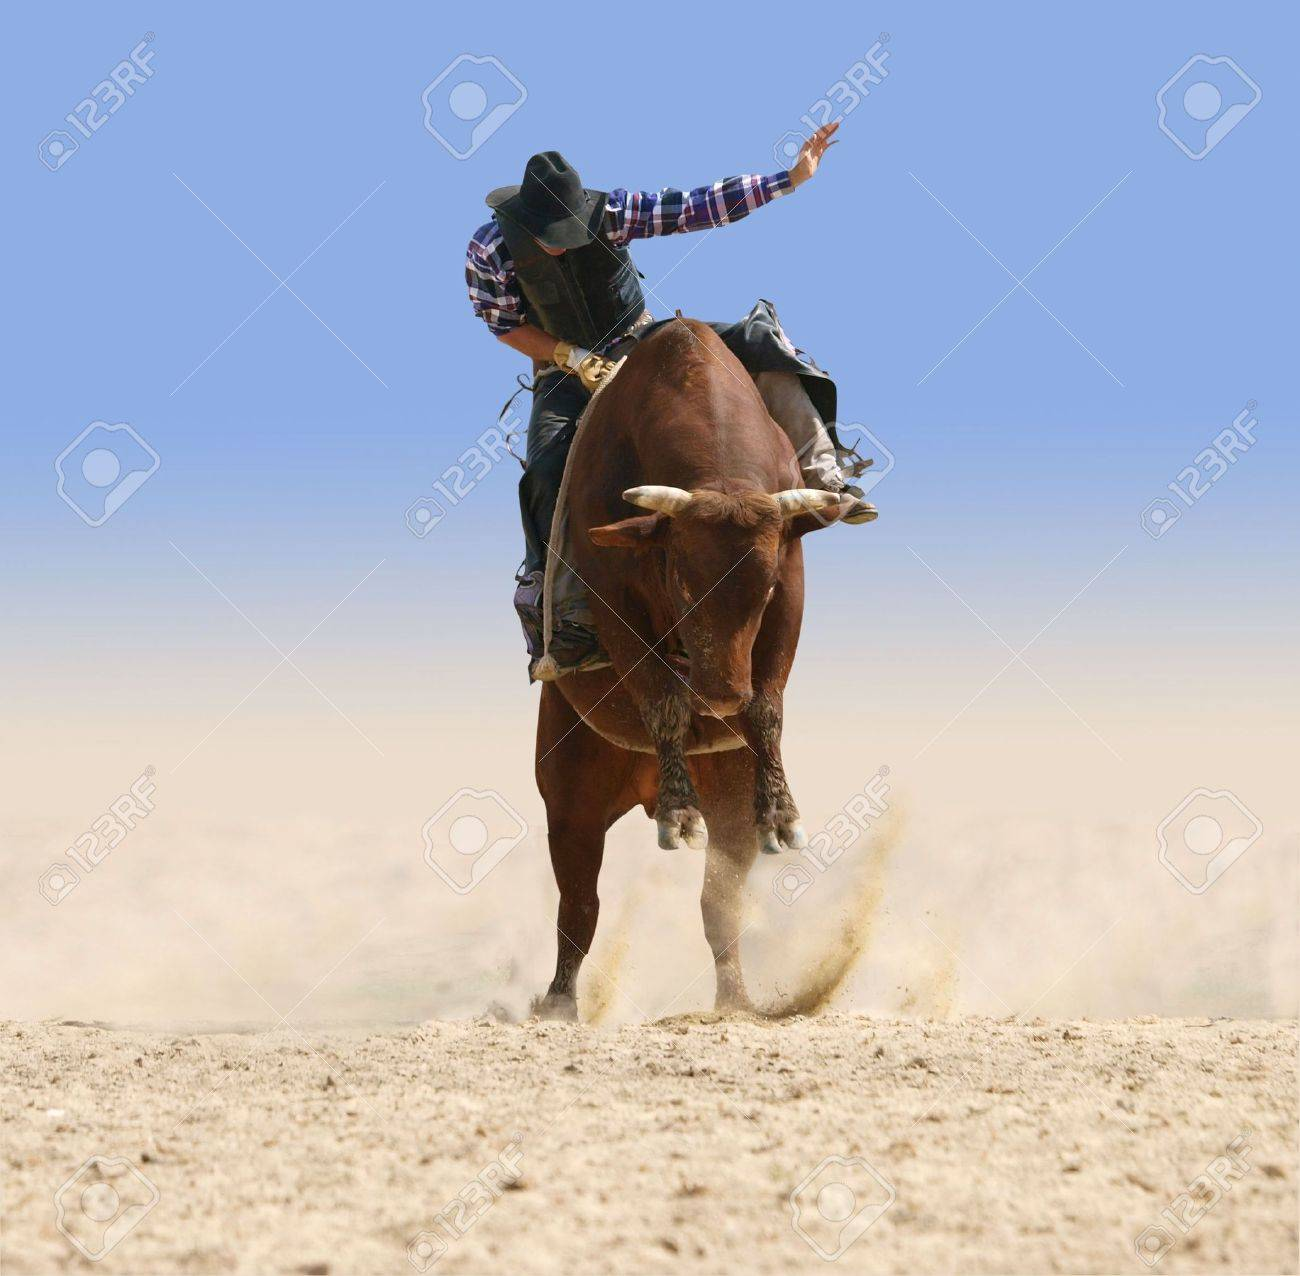 Cowboy Riding a Large Red Bull - 6176845